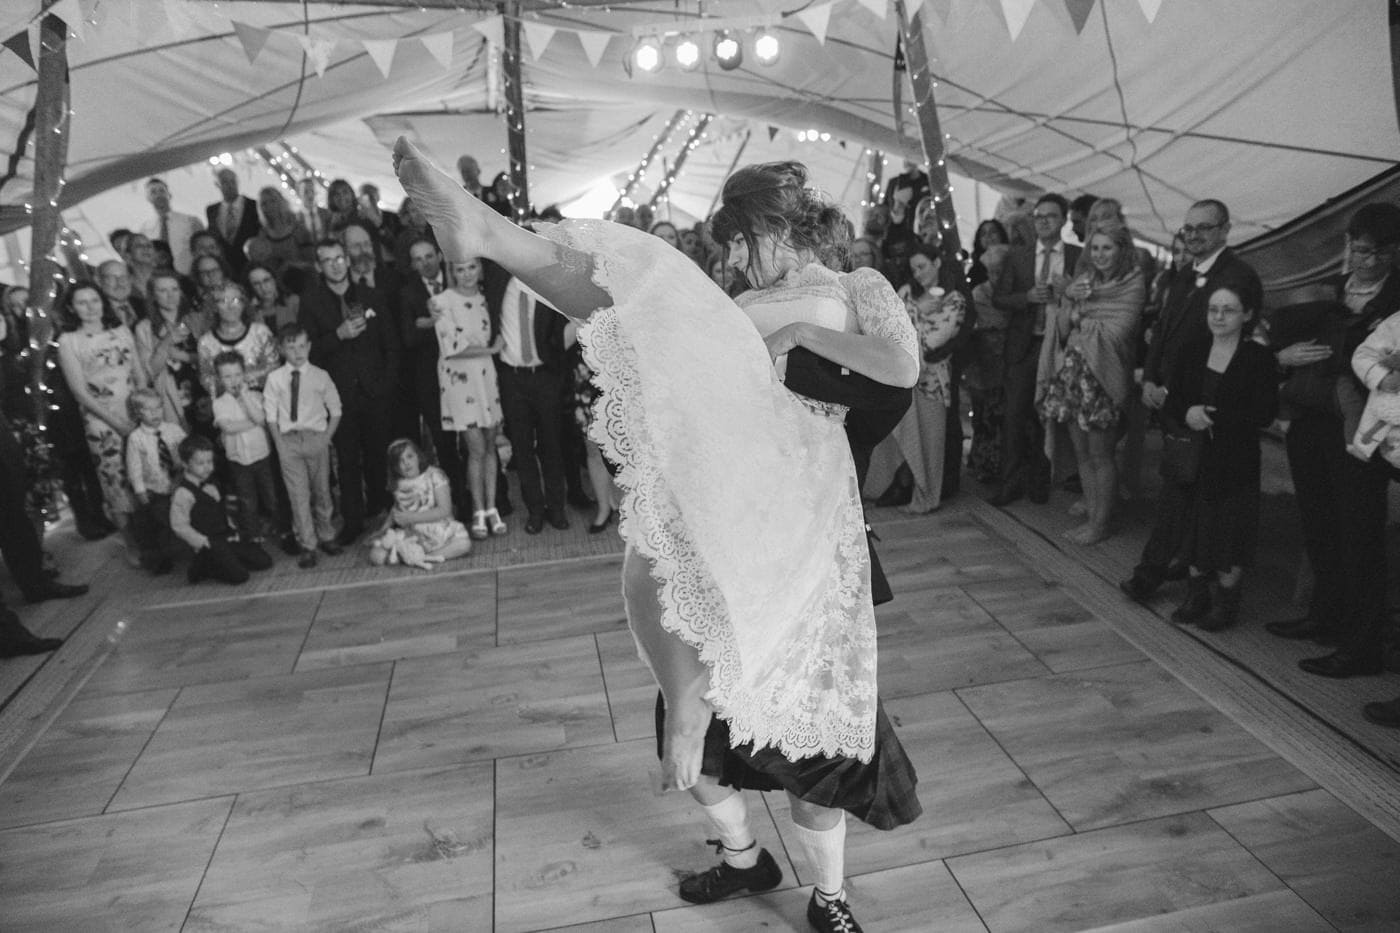 Dancing in Tipi Tent,Portrait of Bride and Groom